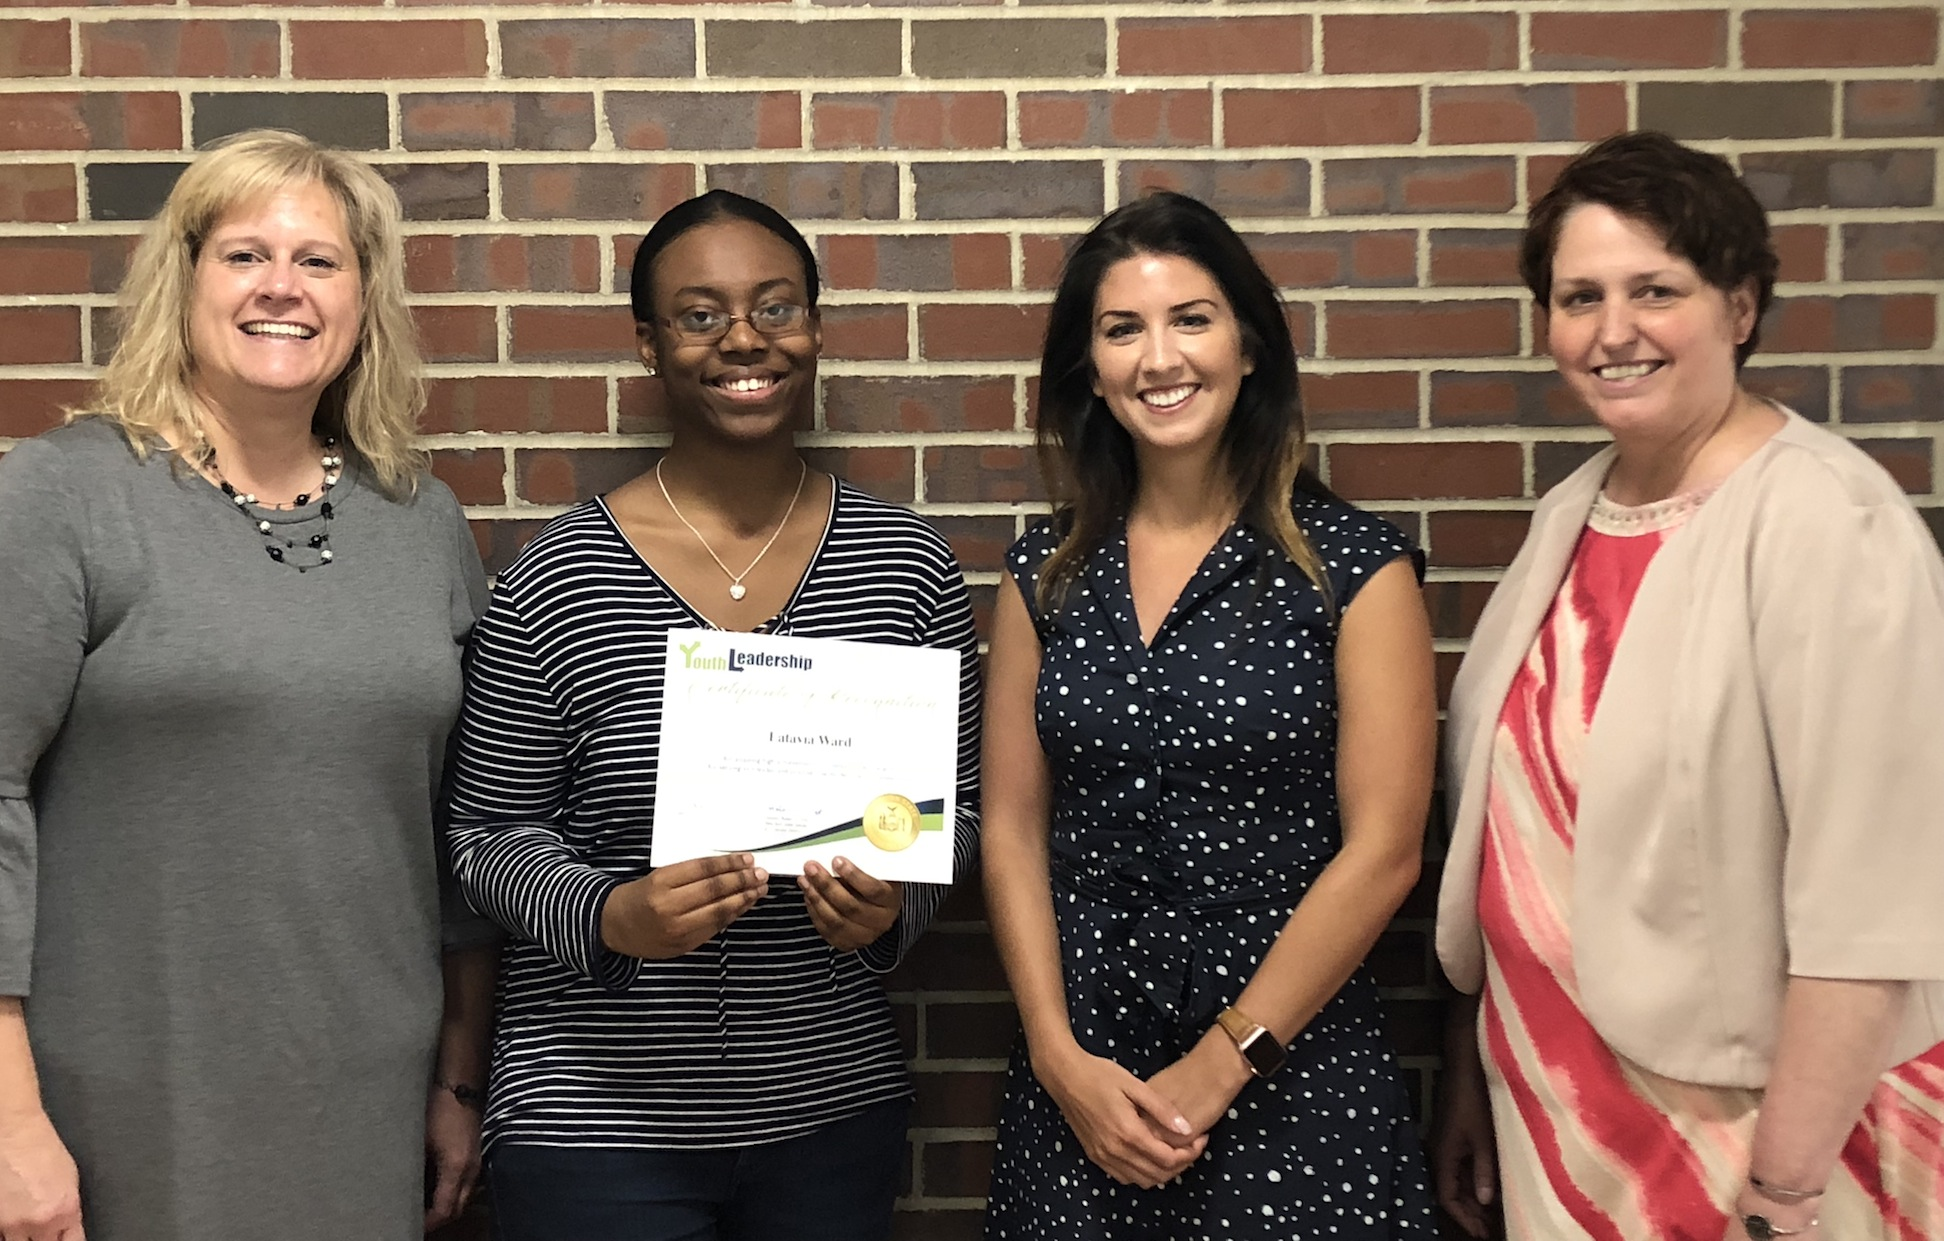 From left, Laura Koeppel, Latavia Ward, Madeline Genovese and Niagara Career and Tech Ed Center Principal Leslie Tanner.